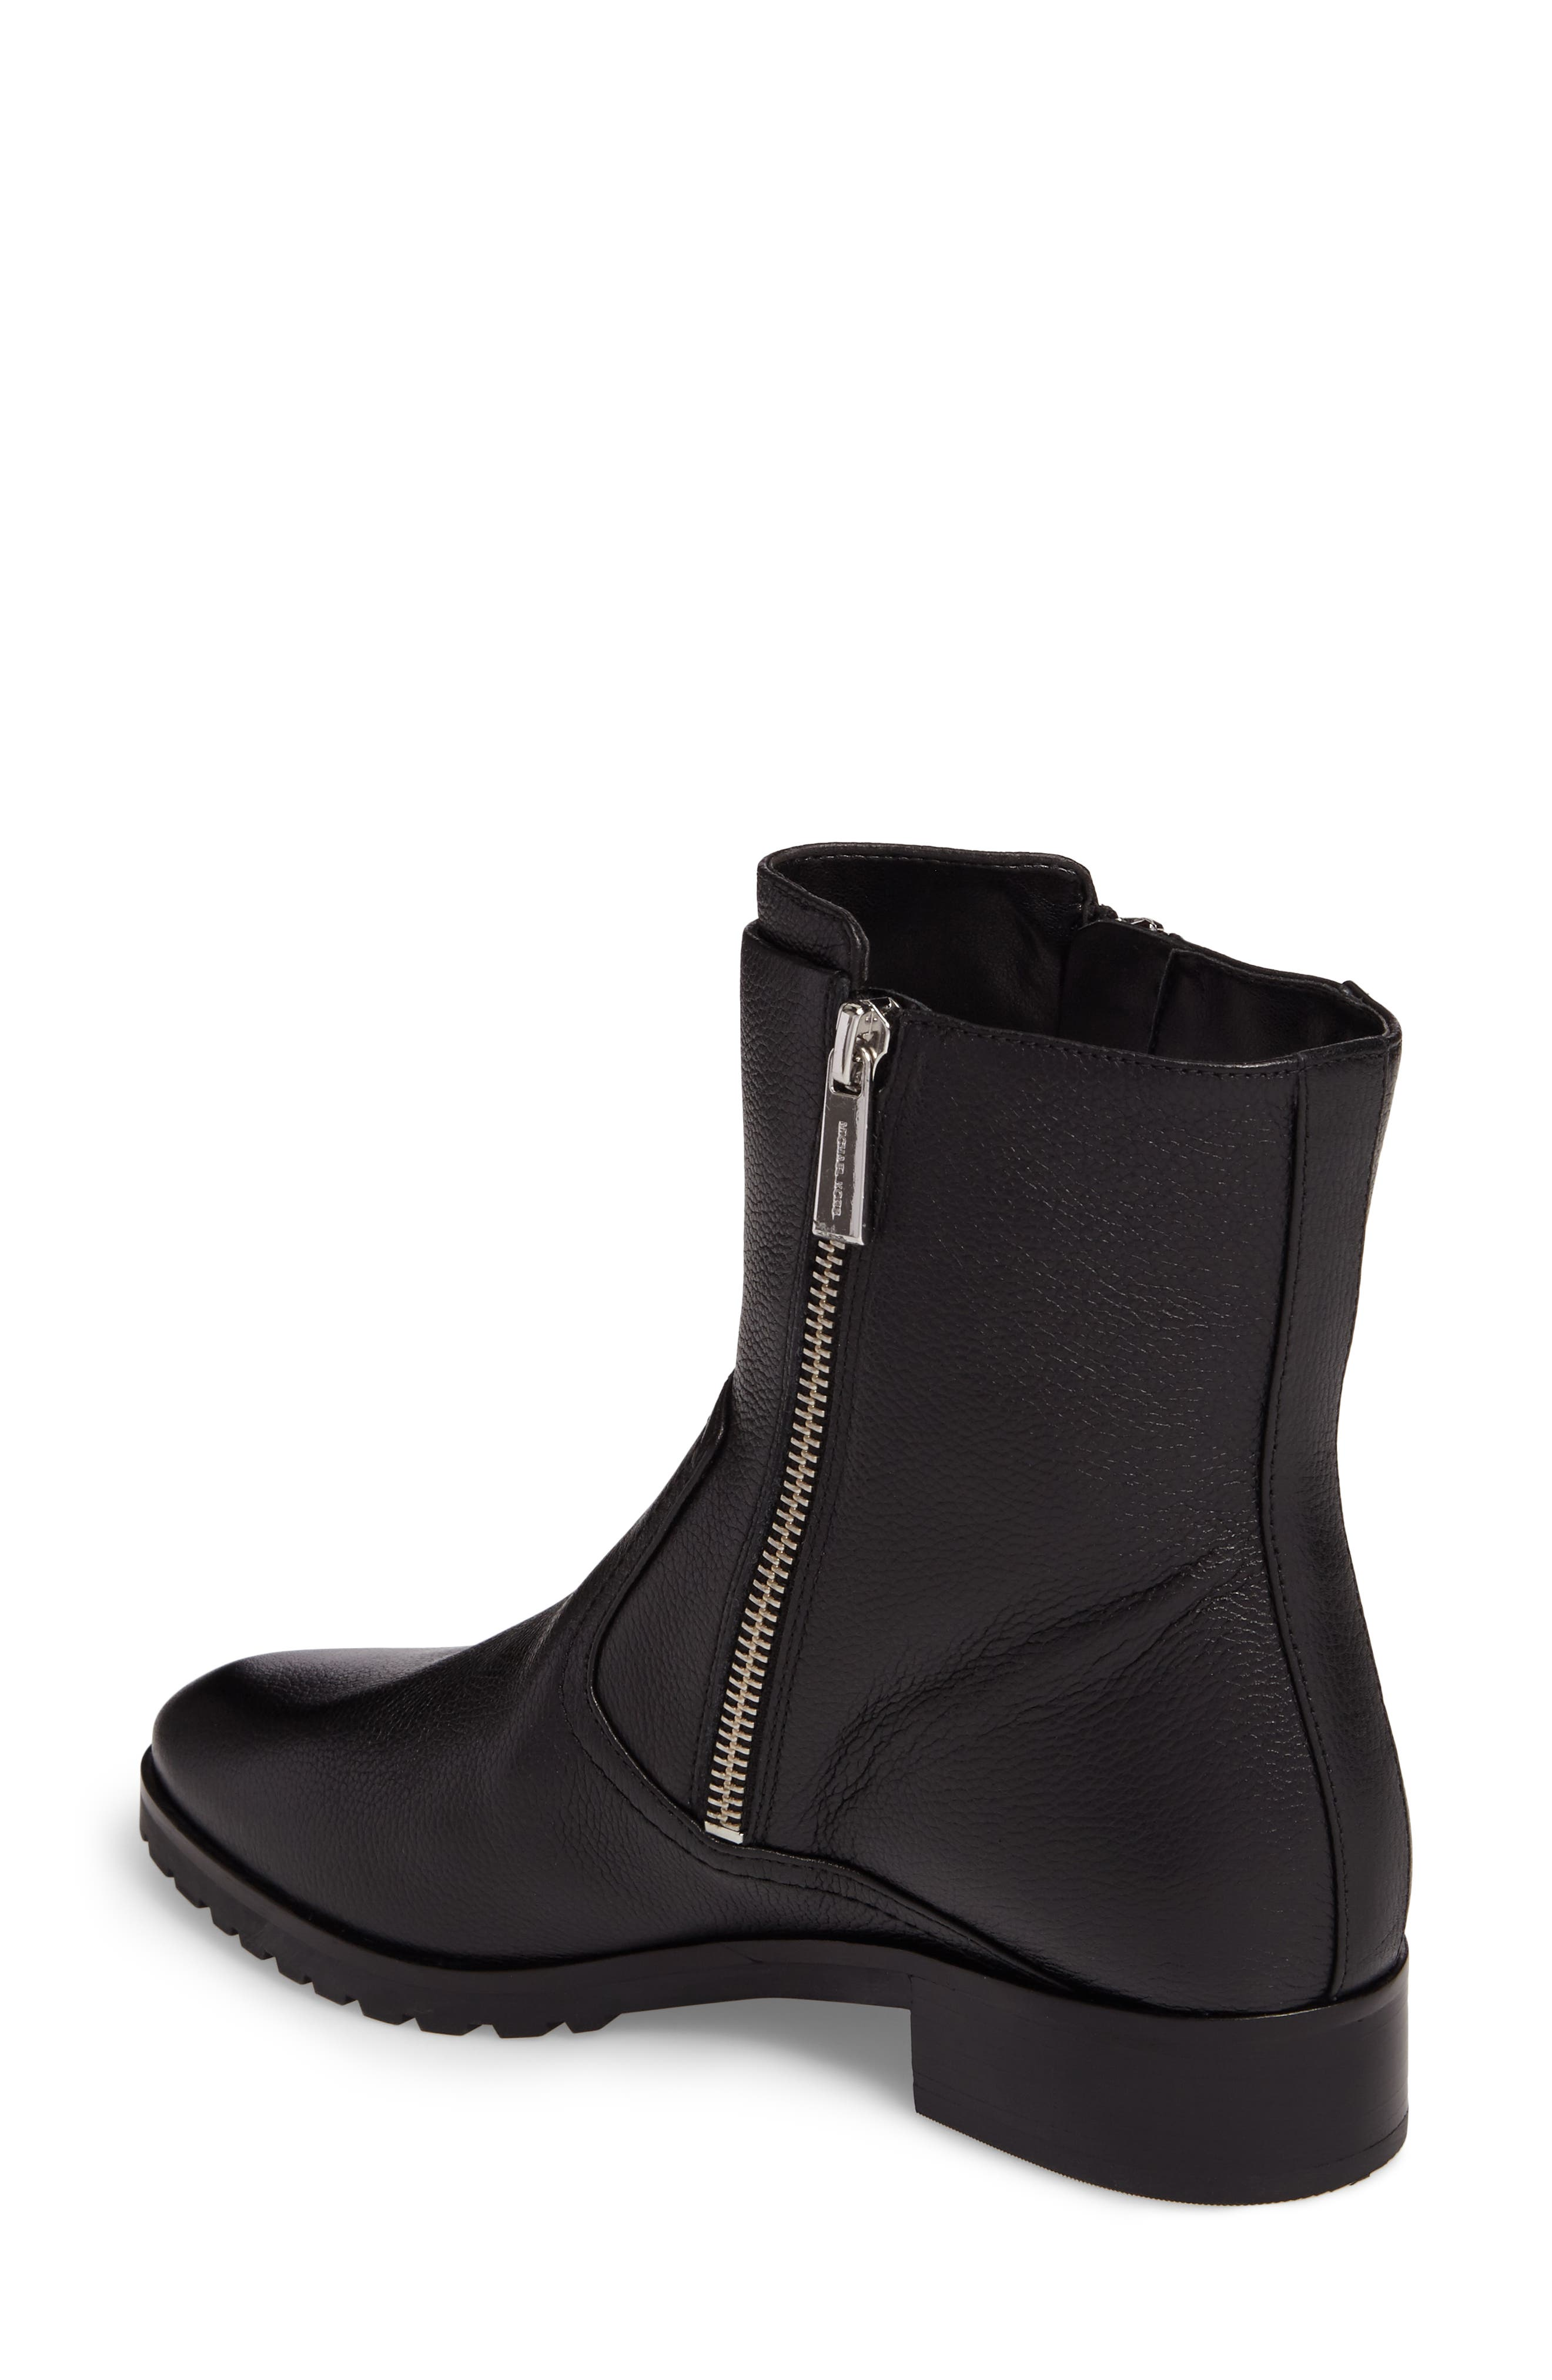 Andi Flat Bootie,                             Alternate thumbnail 2, color,                             001